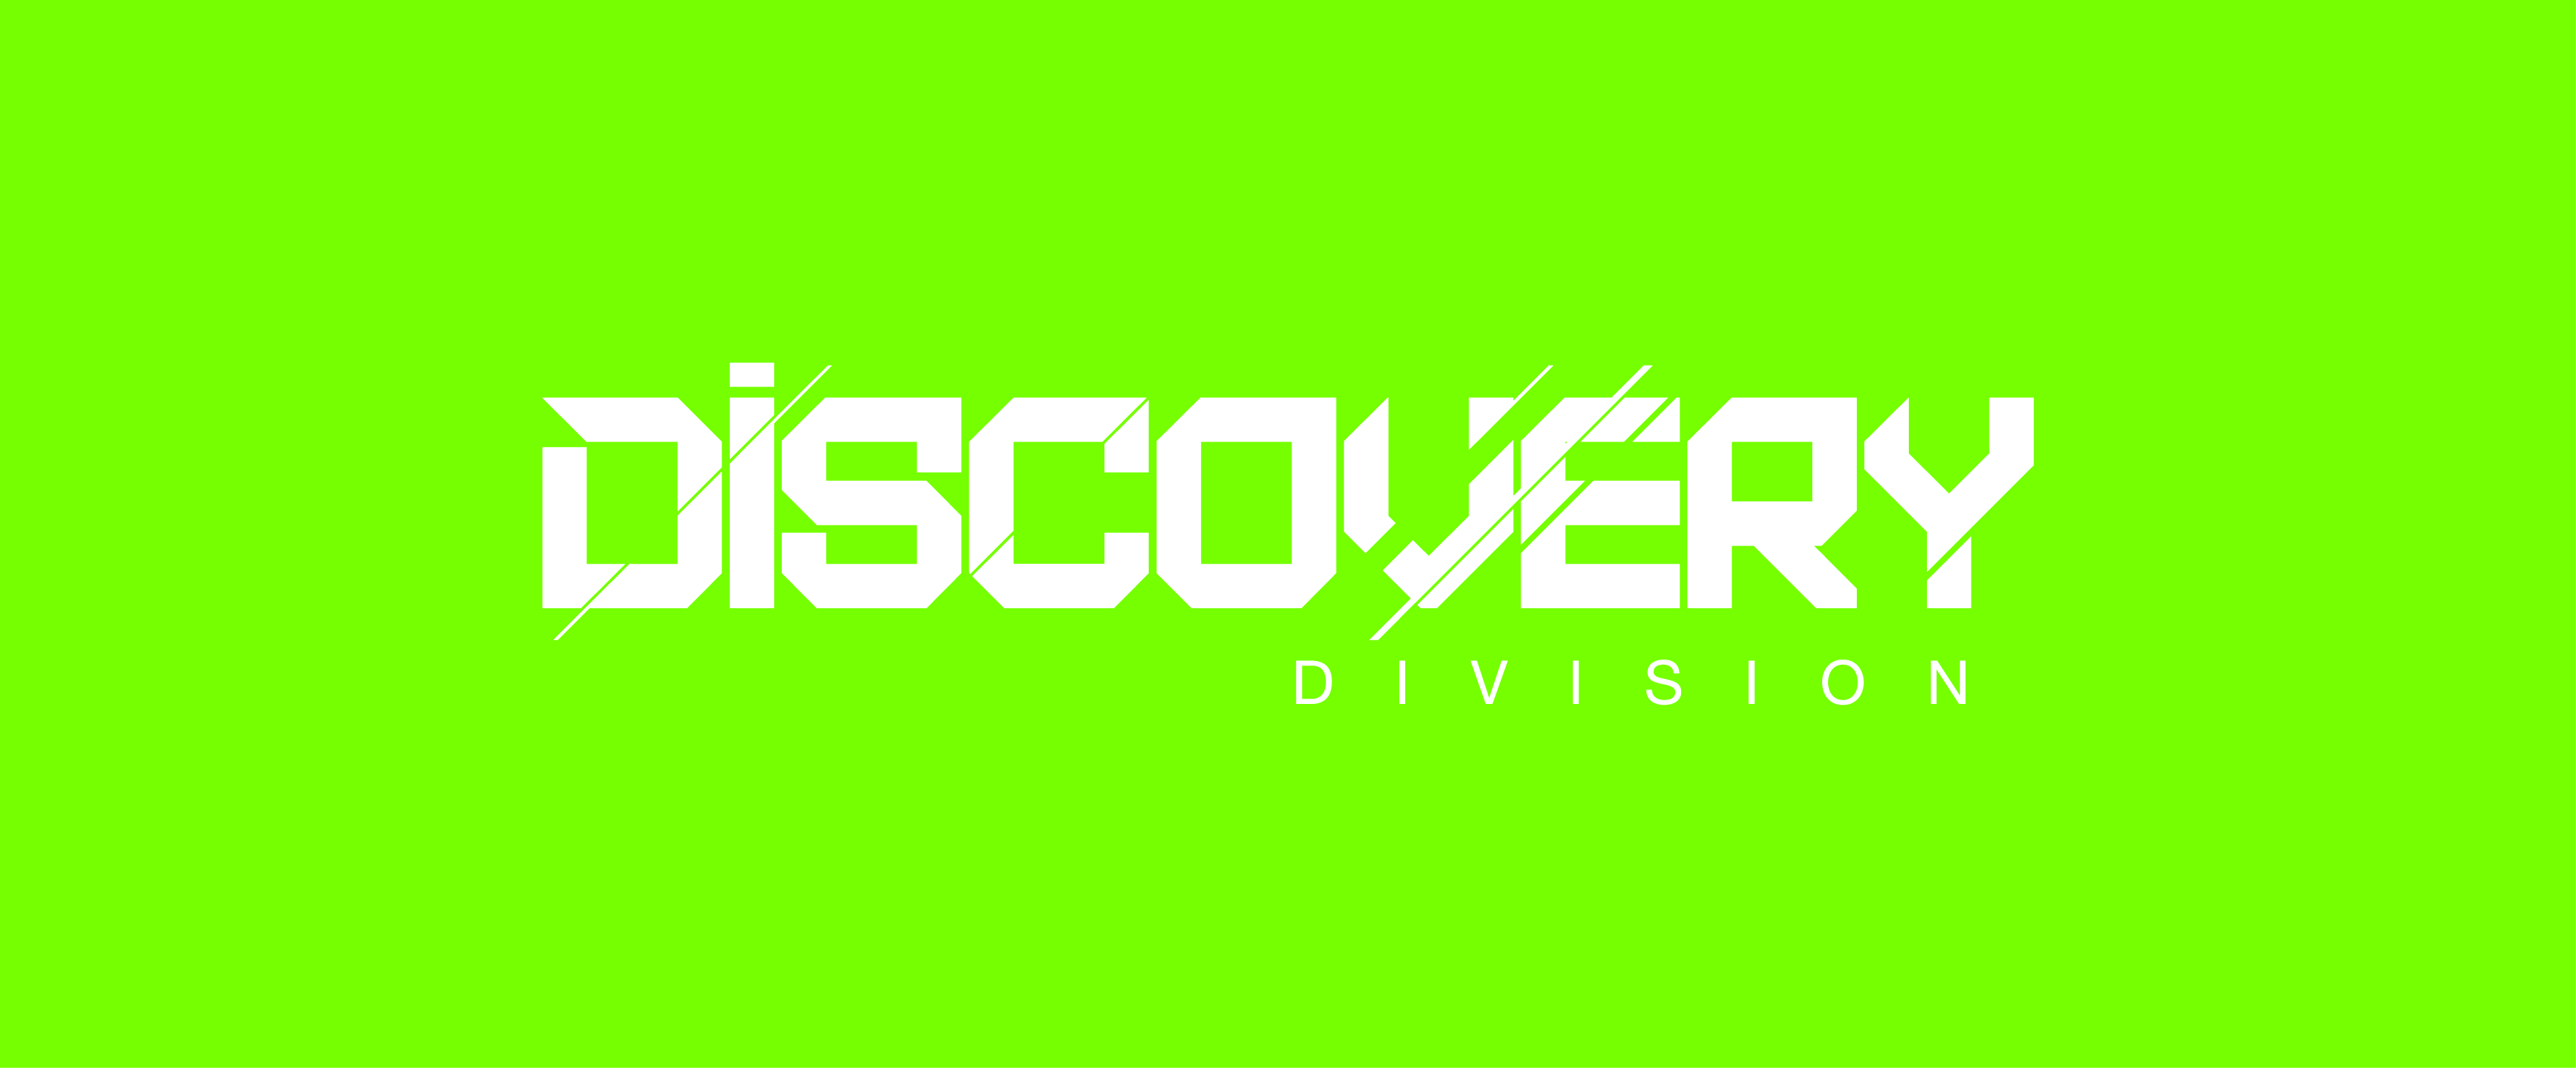 Discovery Division